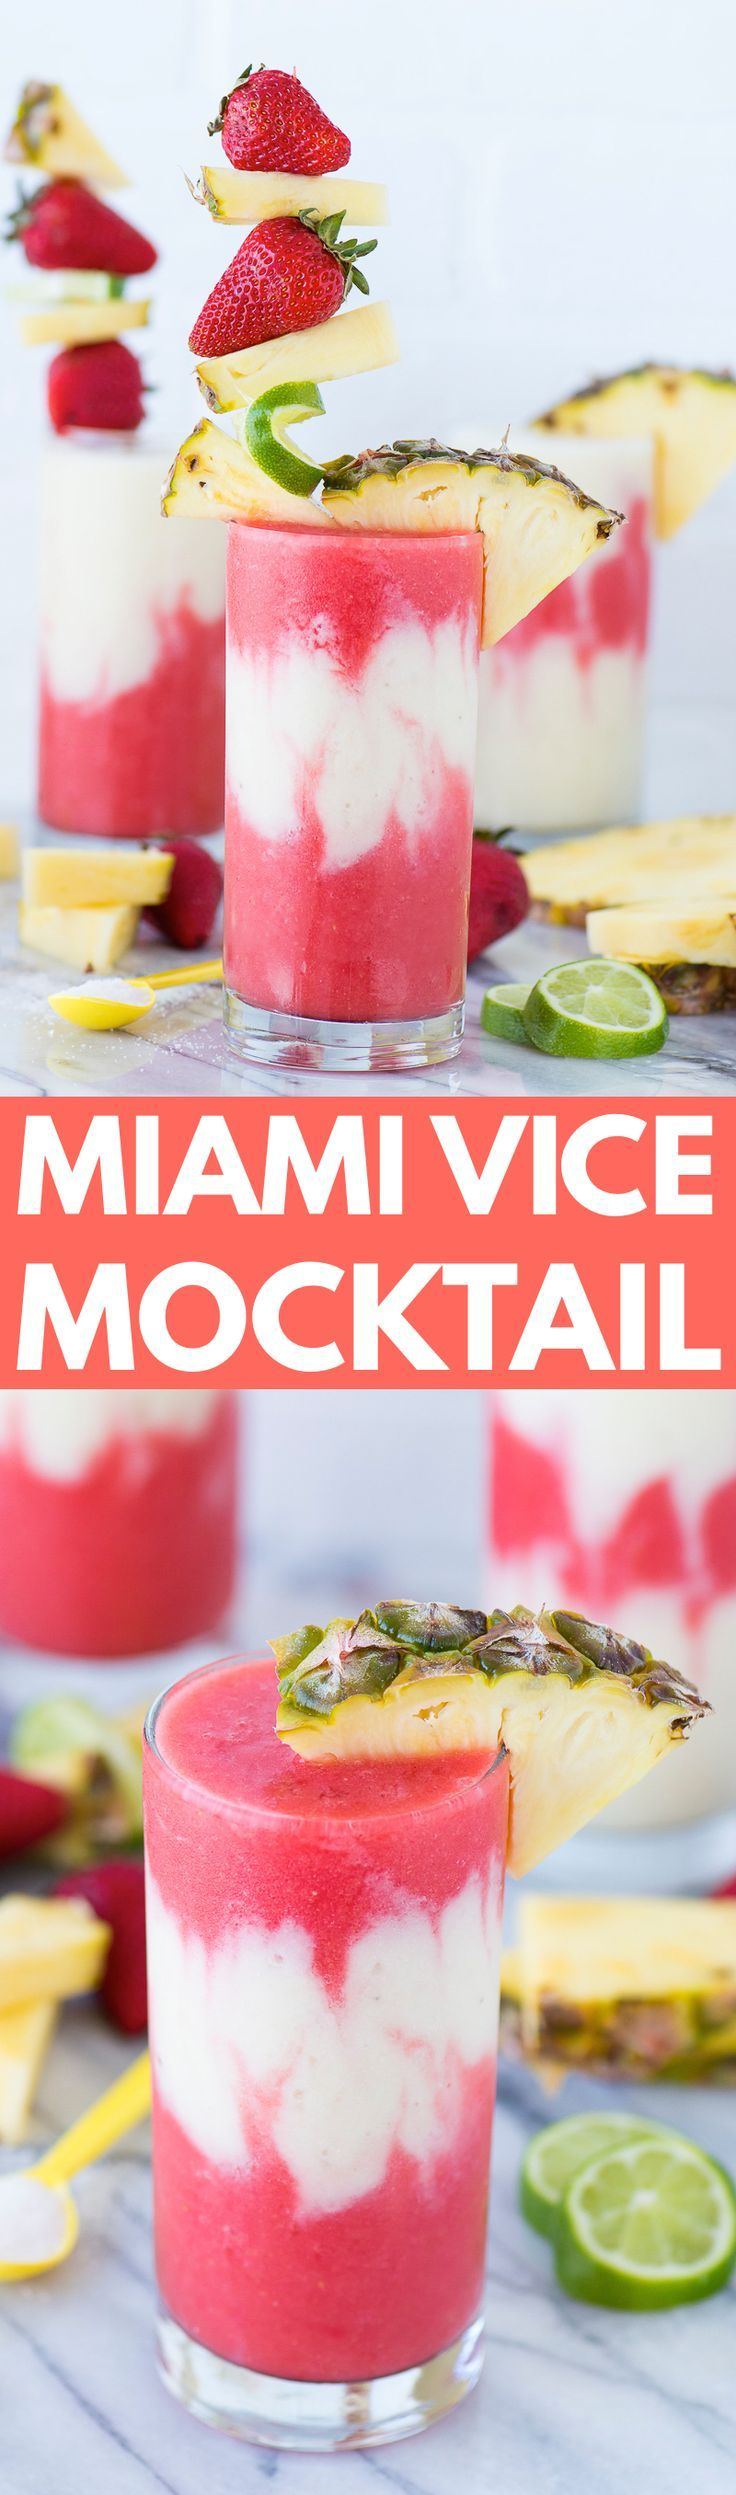 The best miami vice mocktail! Half strawberry daiquiri half pina colada layered in one glass. A tropical non-alcoholic lava flow!